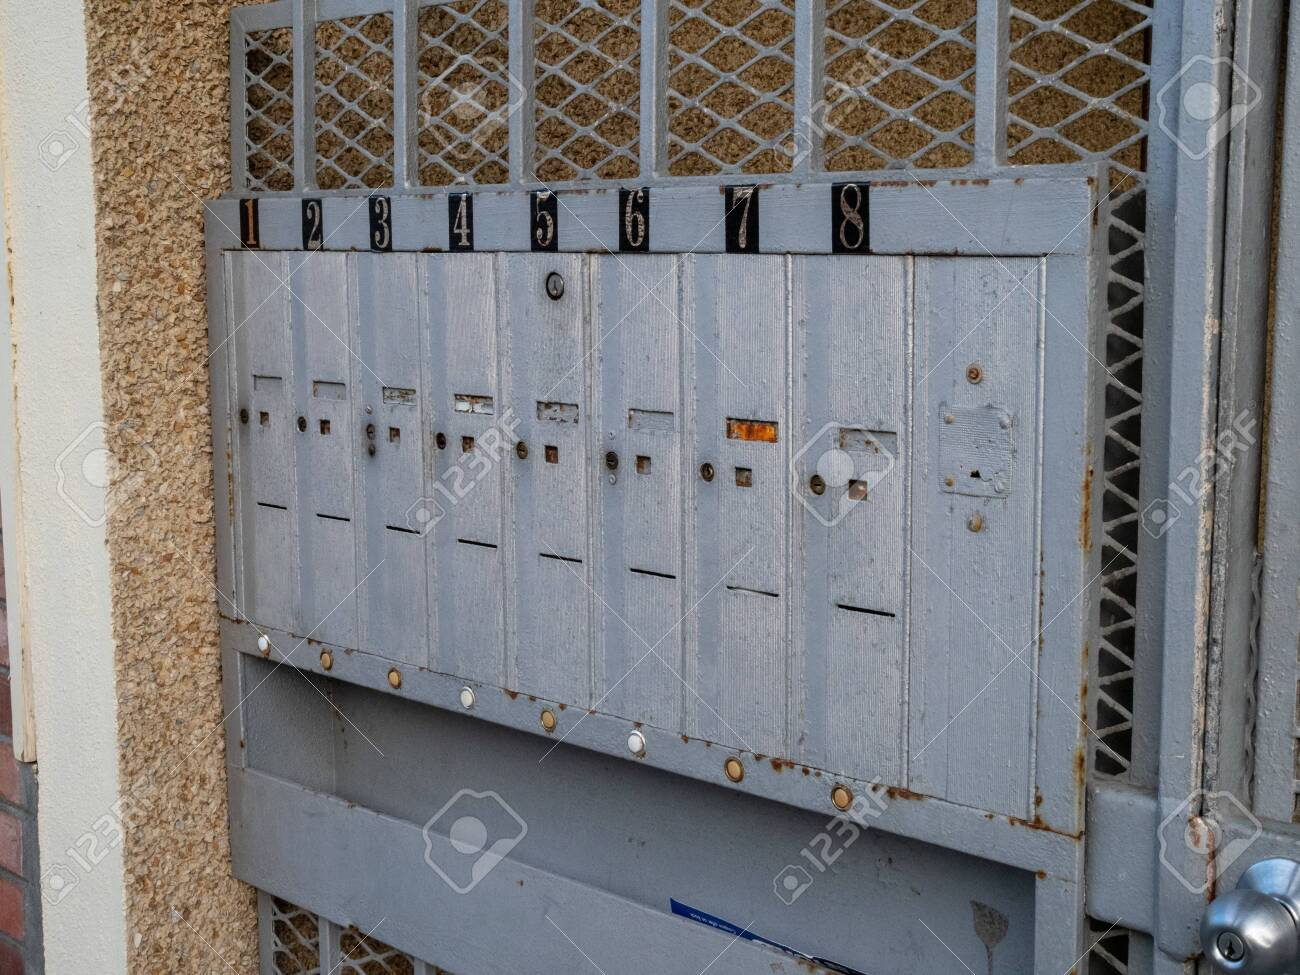 Outdoor apartment mailboxes with rusty look and dirty state units..